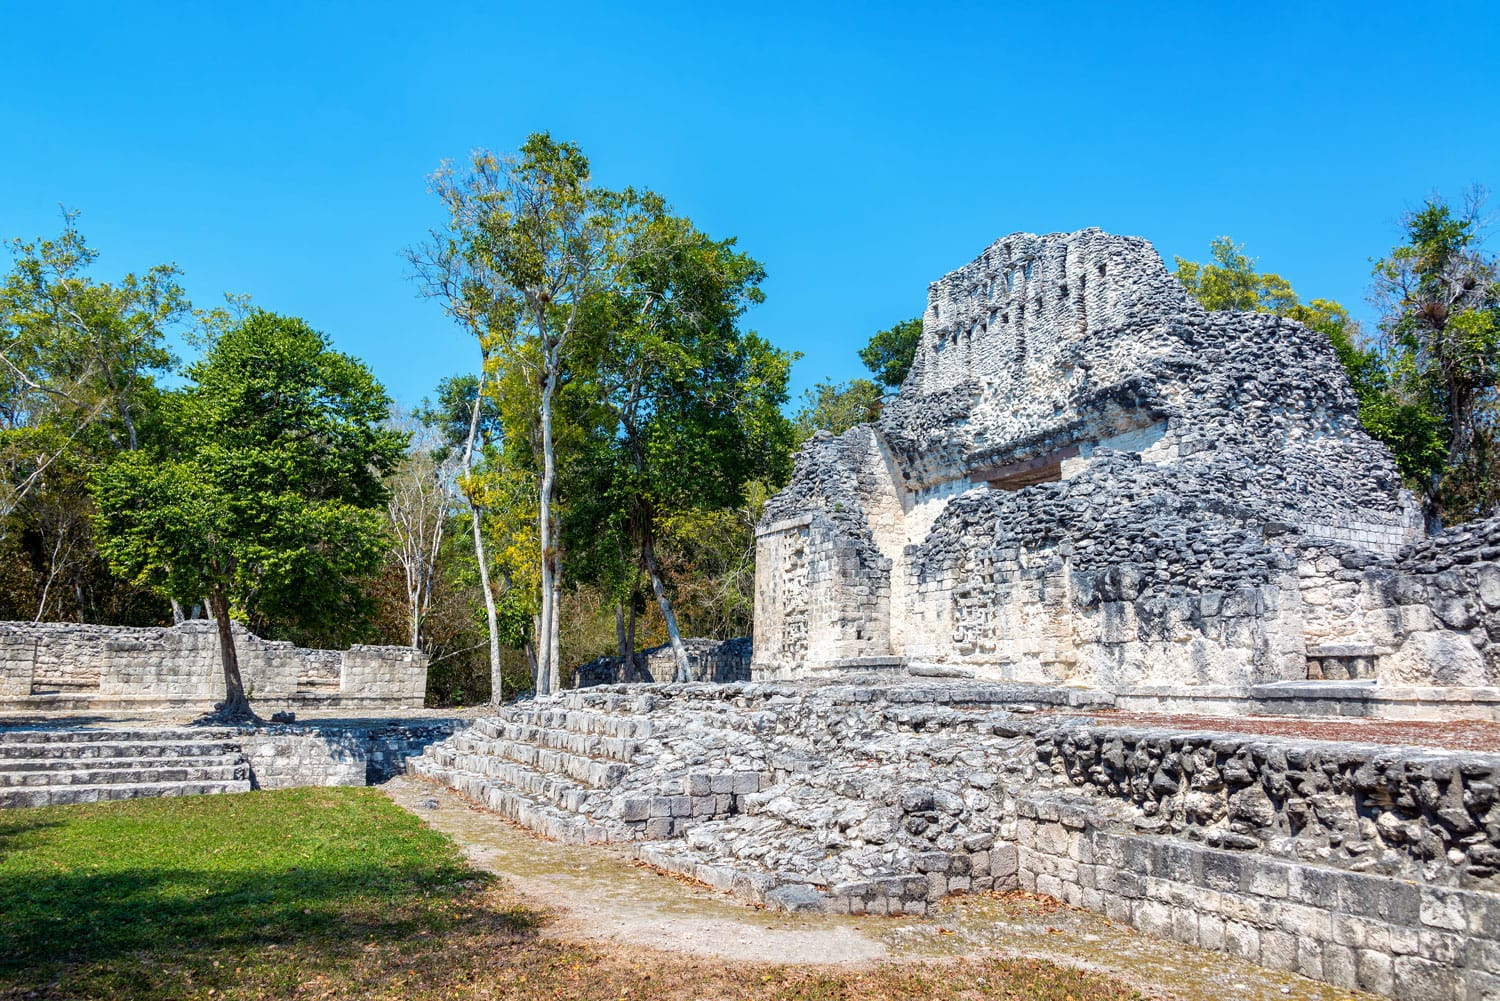 Beautiful Mayan temple in the ruins of Chicanna, Mexico